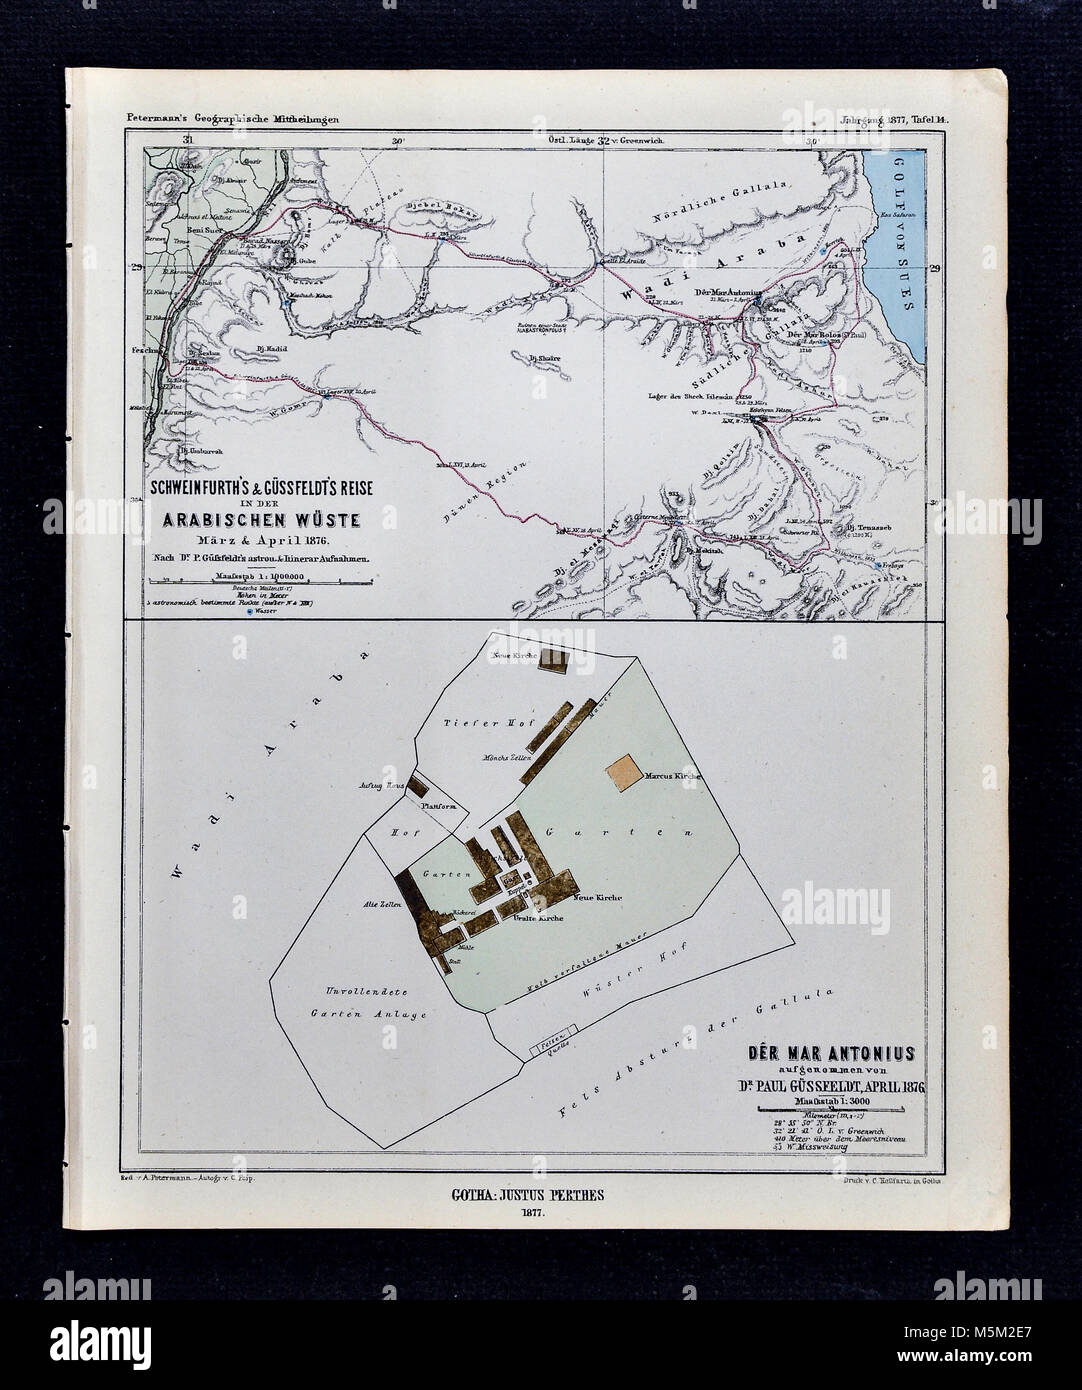 Historical map africa stock photos historical map africa stock 1877 petermann mittheilungen map central africa railroads stock image ccuart Choice Image